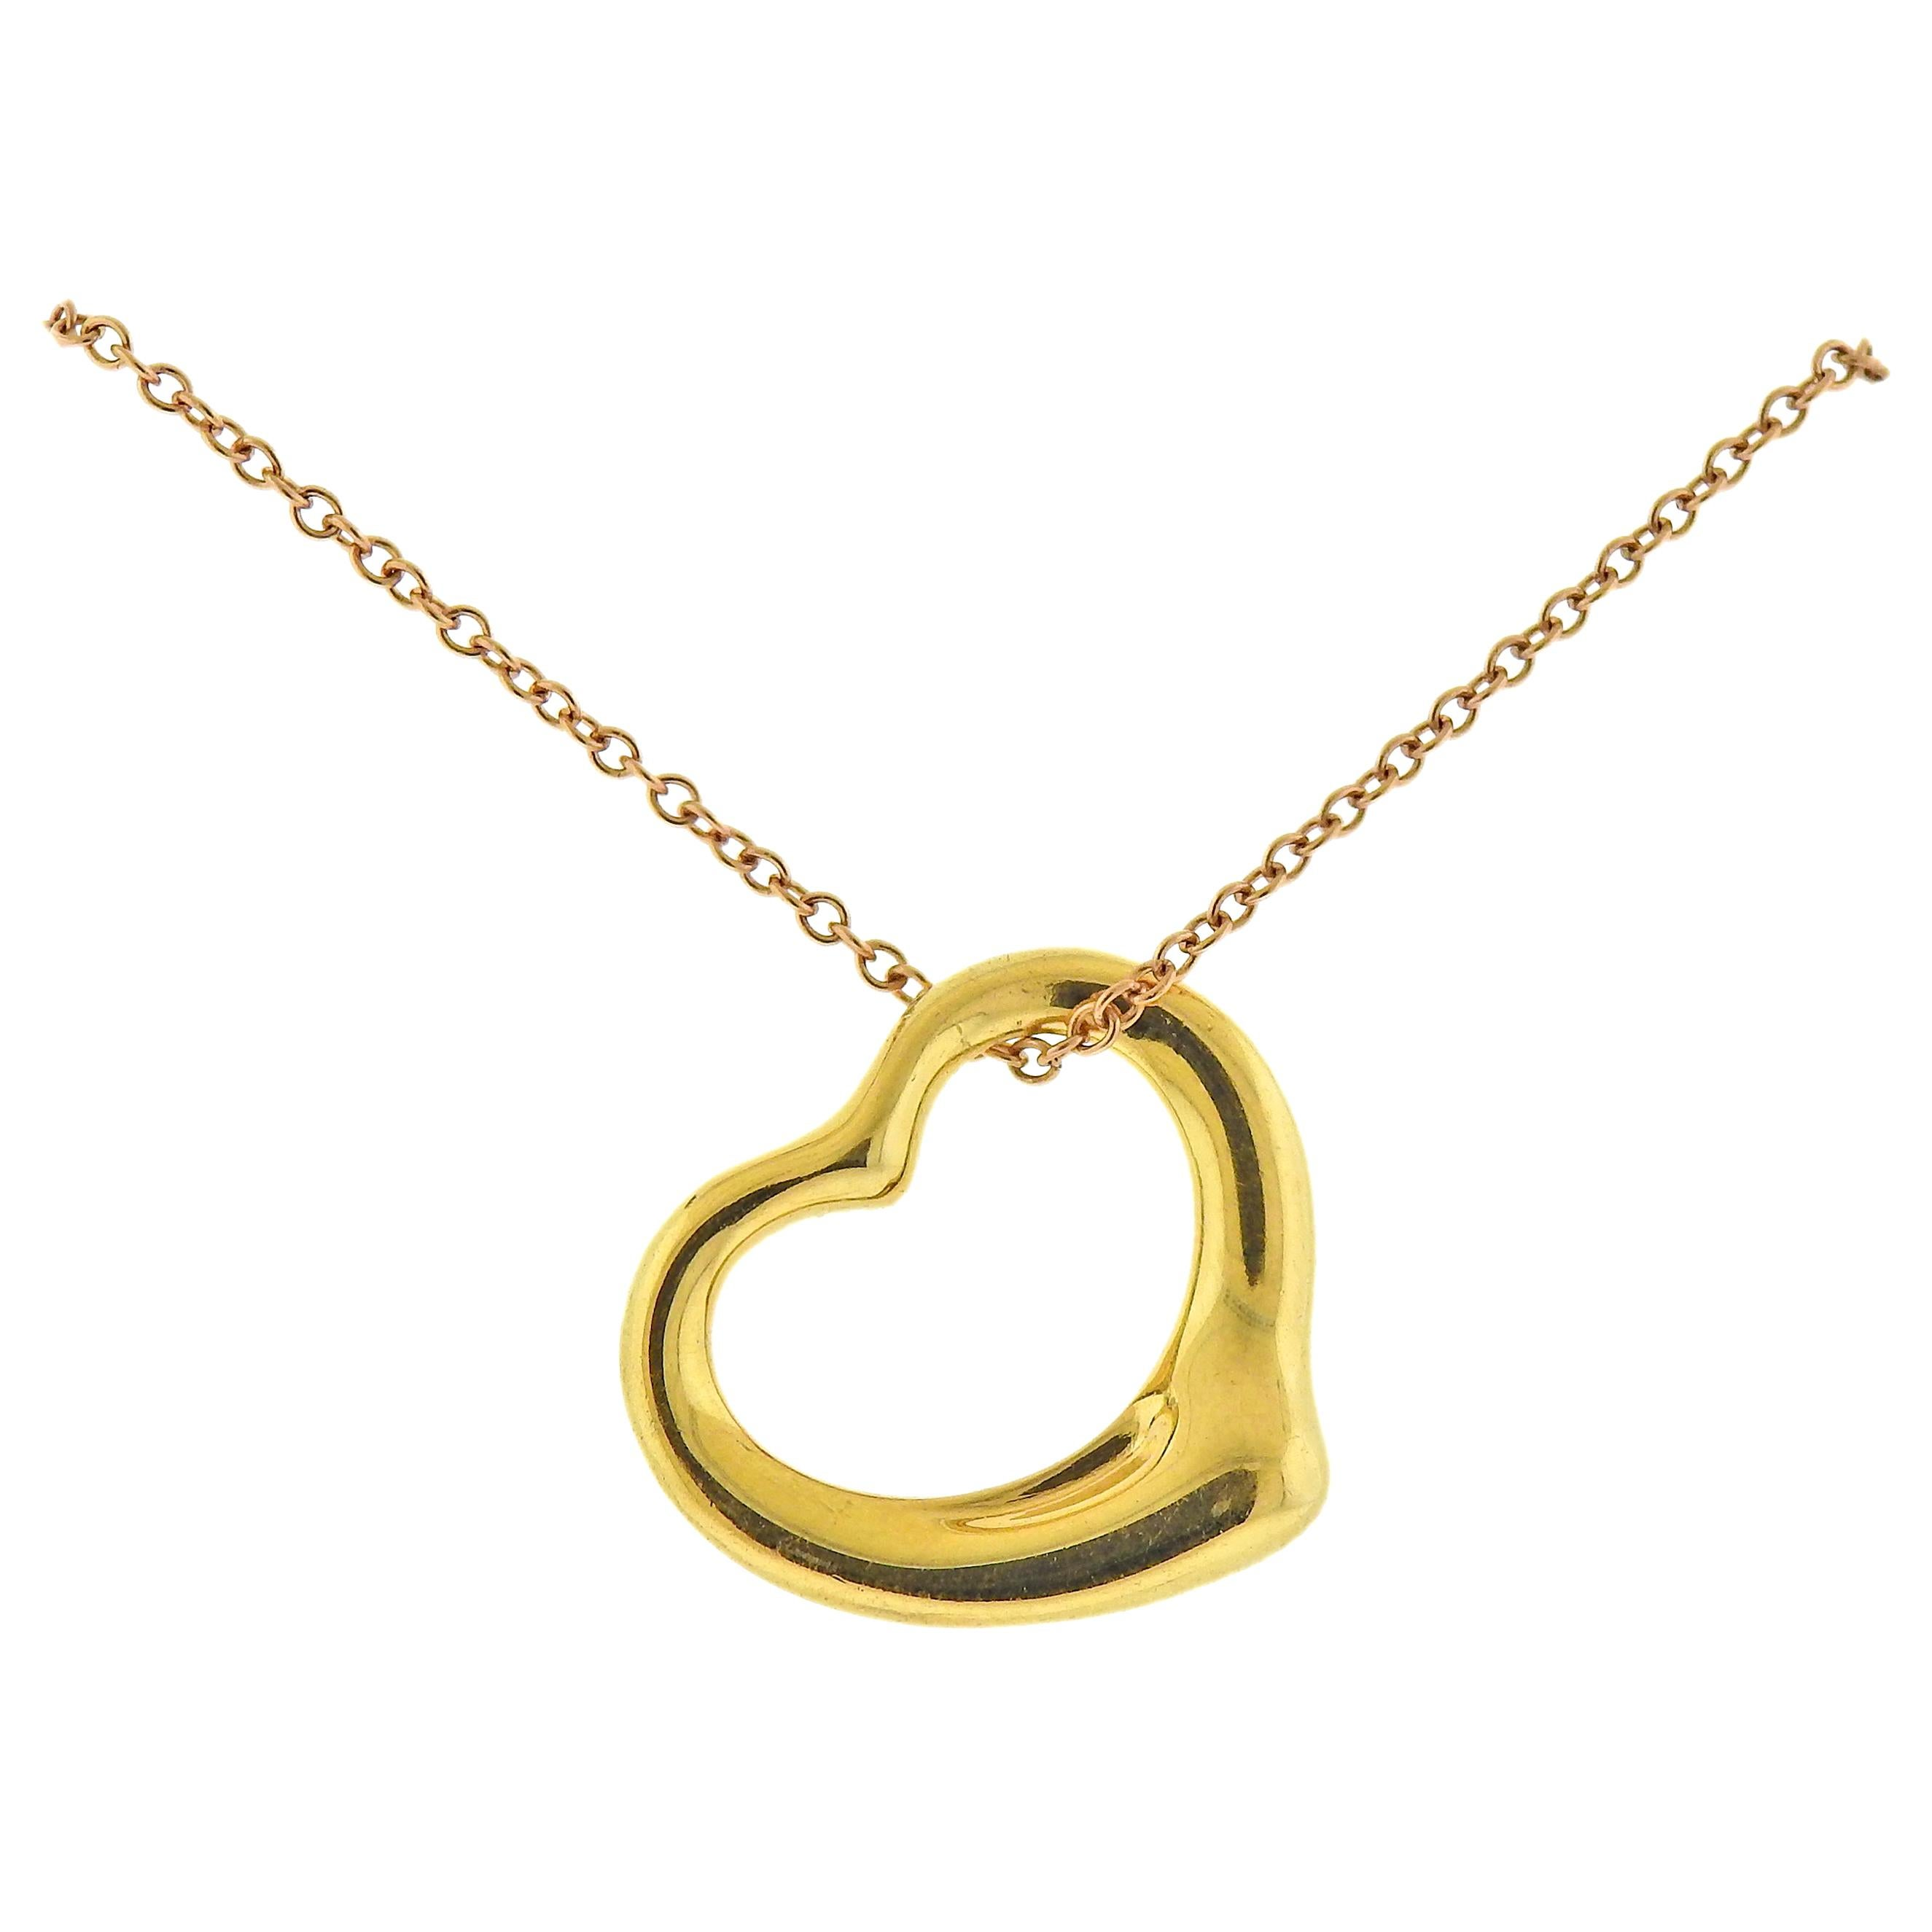 Tiffany & Co. Elsa Peretti Open Heart Gold Pendant Necklace